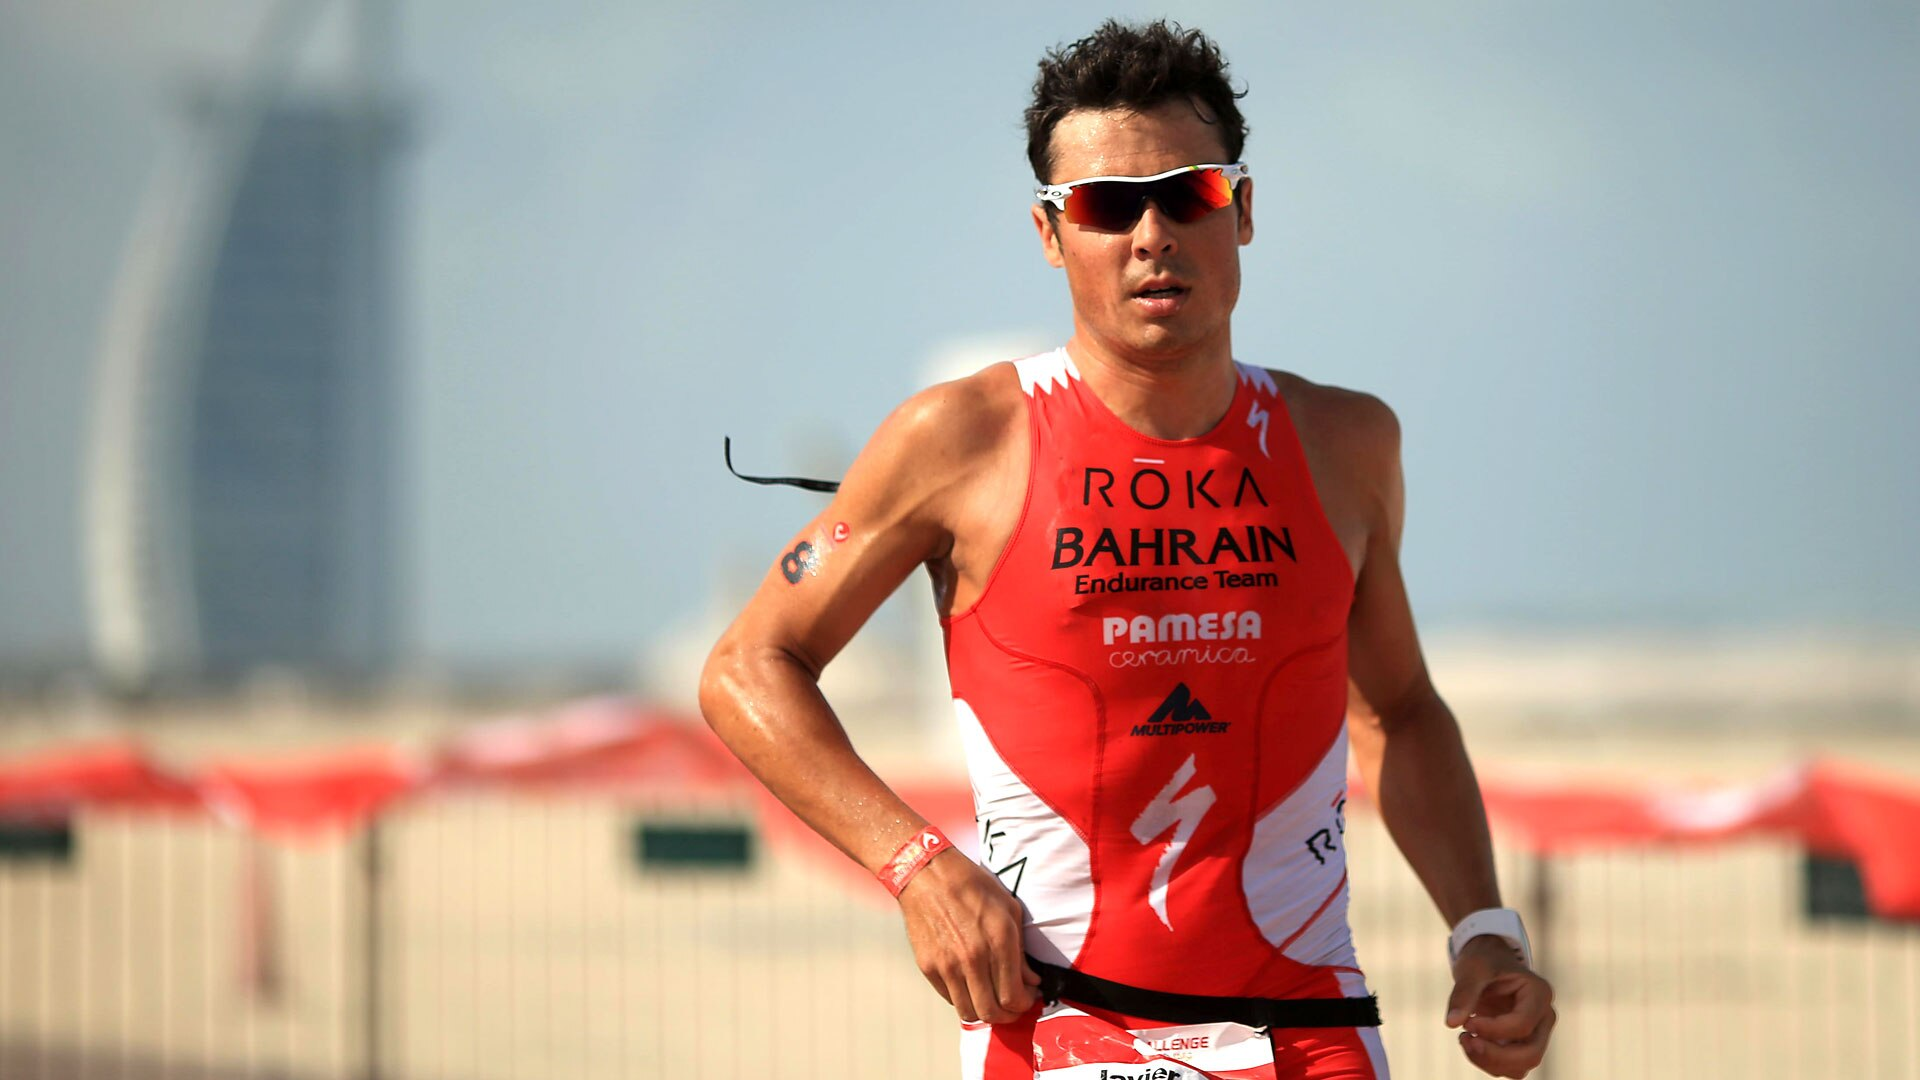 Challenge Dubai - Triathlon's journey from a Parisian suburb to a $1 million prize purse in the Middle East